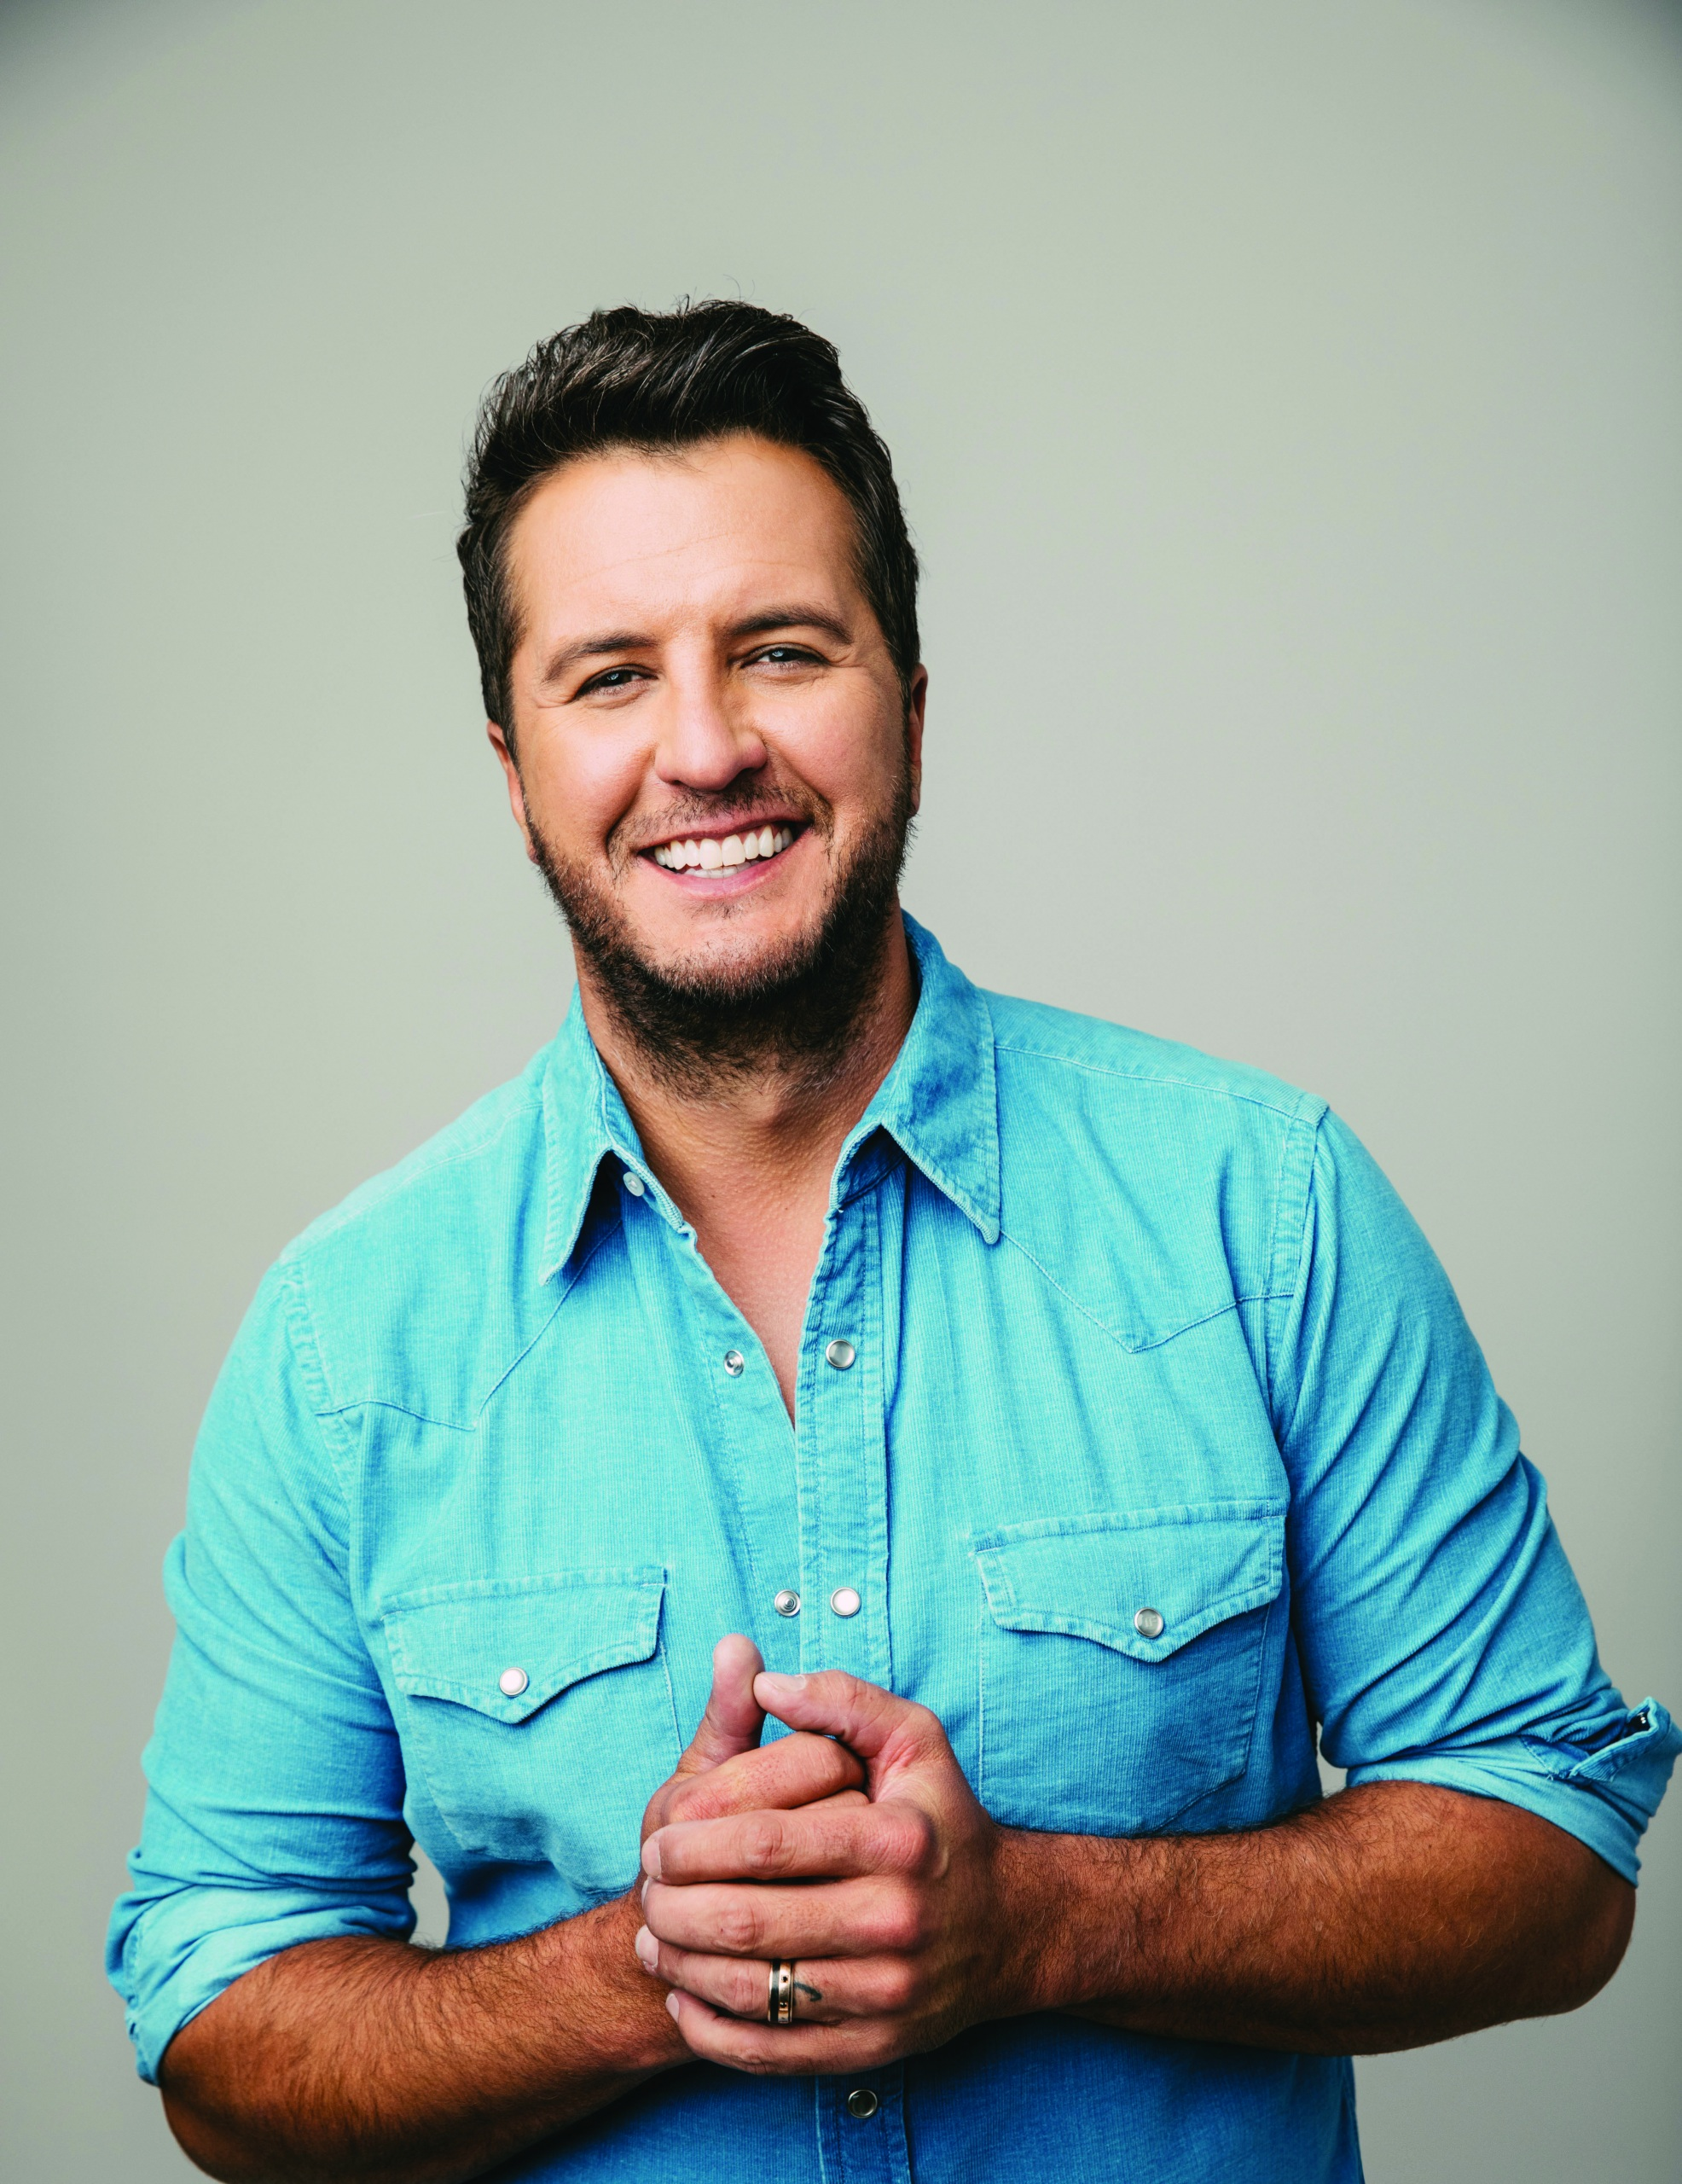 LUKE BRYAN TO PERFORM ON ABC'S AMERICAN IDOL THIS SUNDAY.